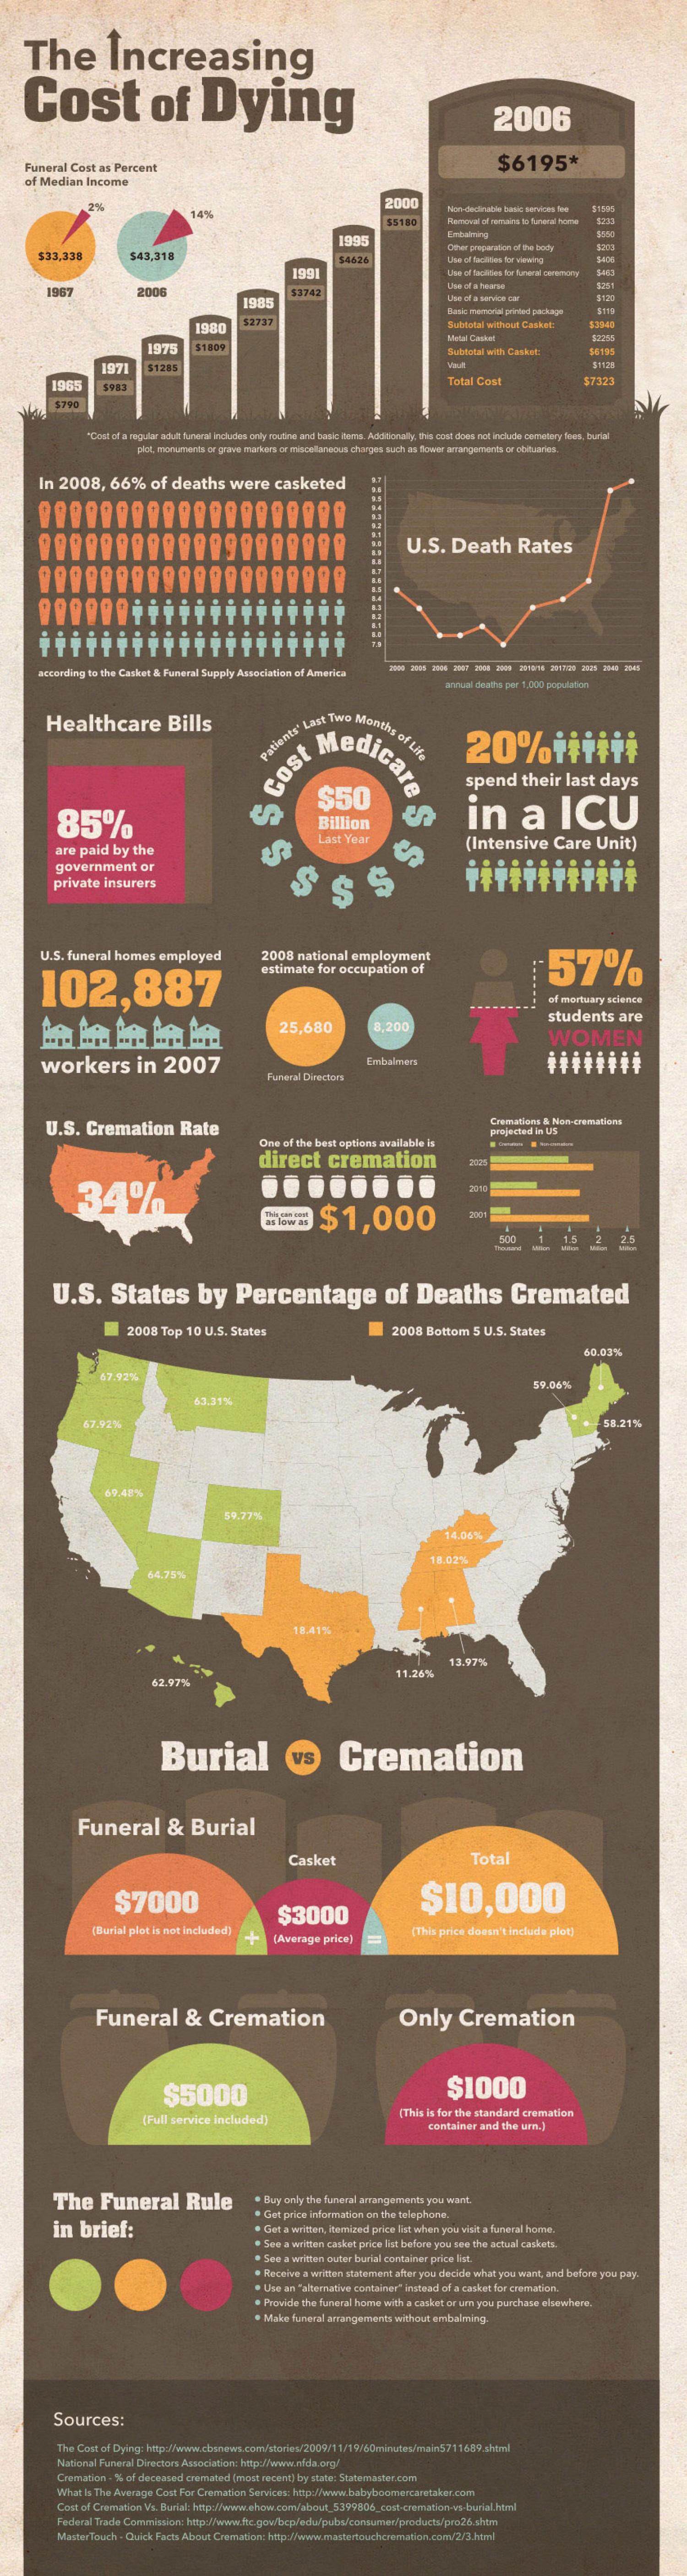 I really love info-graphics. This one is quite interesting